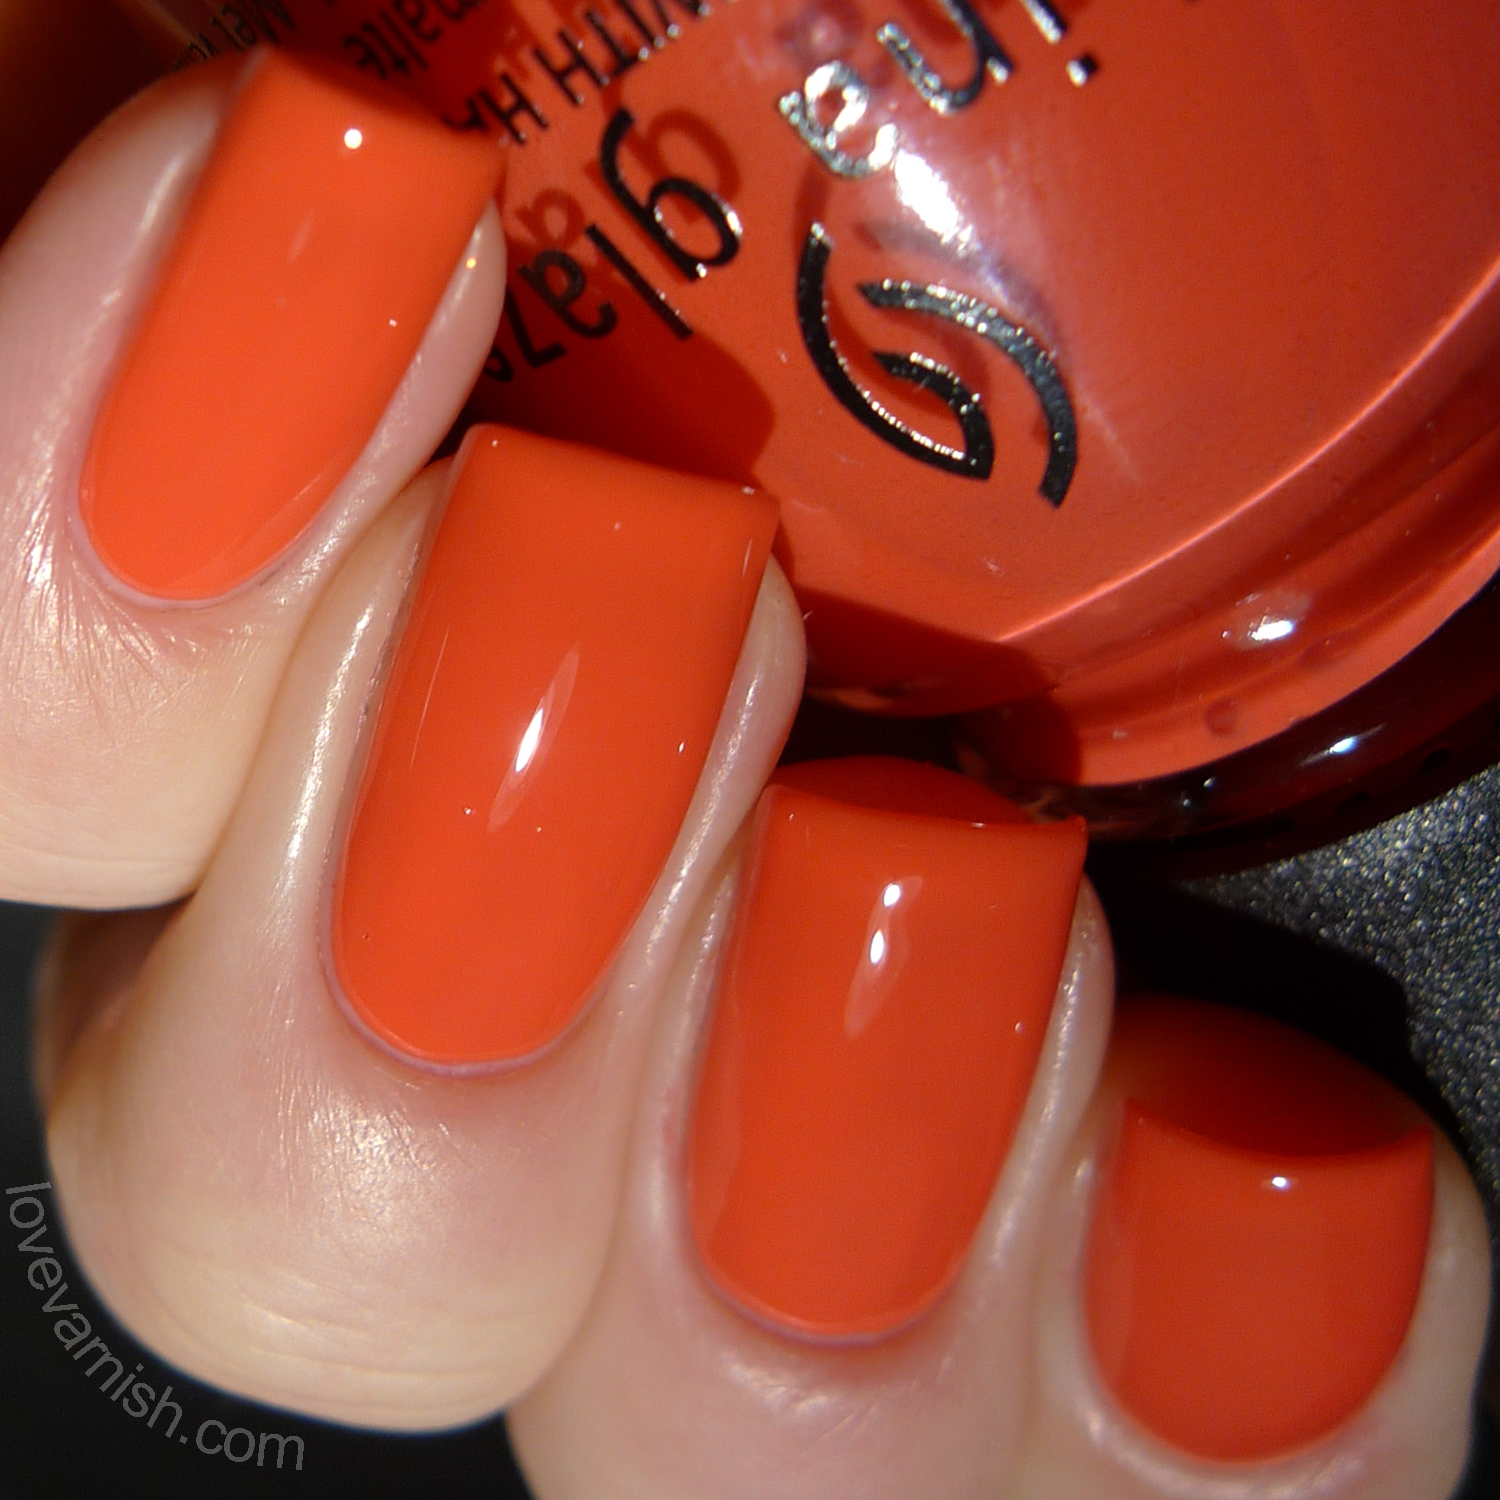 China Glaze Road Trip I Brake for Colour